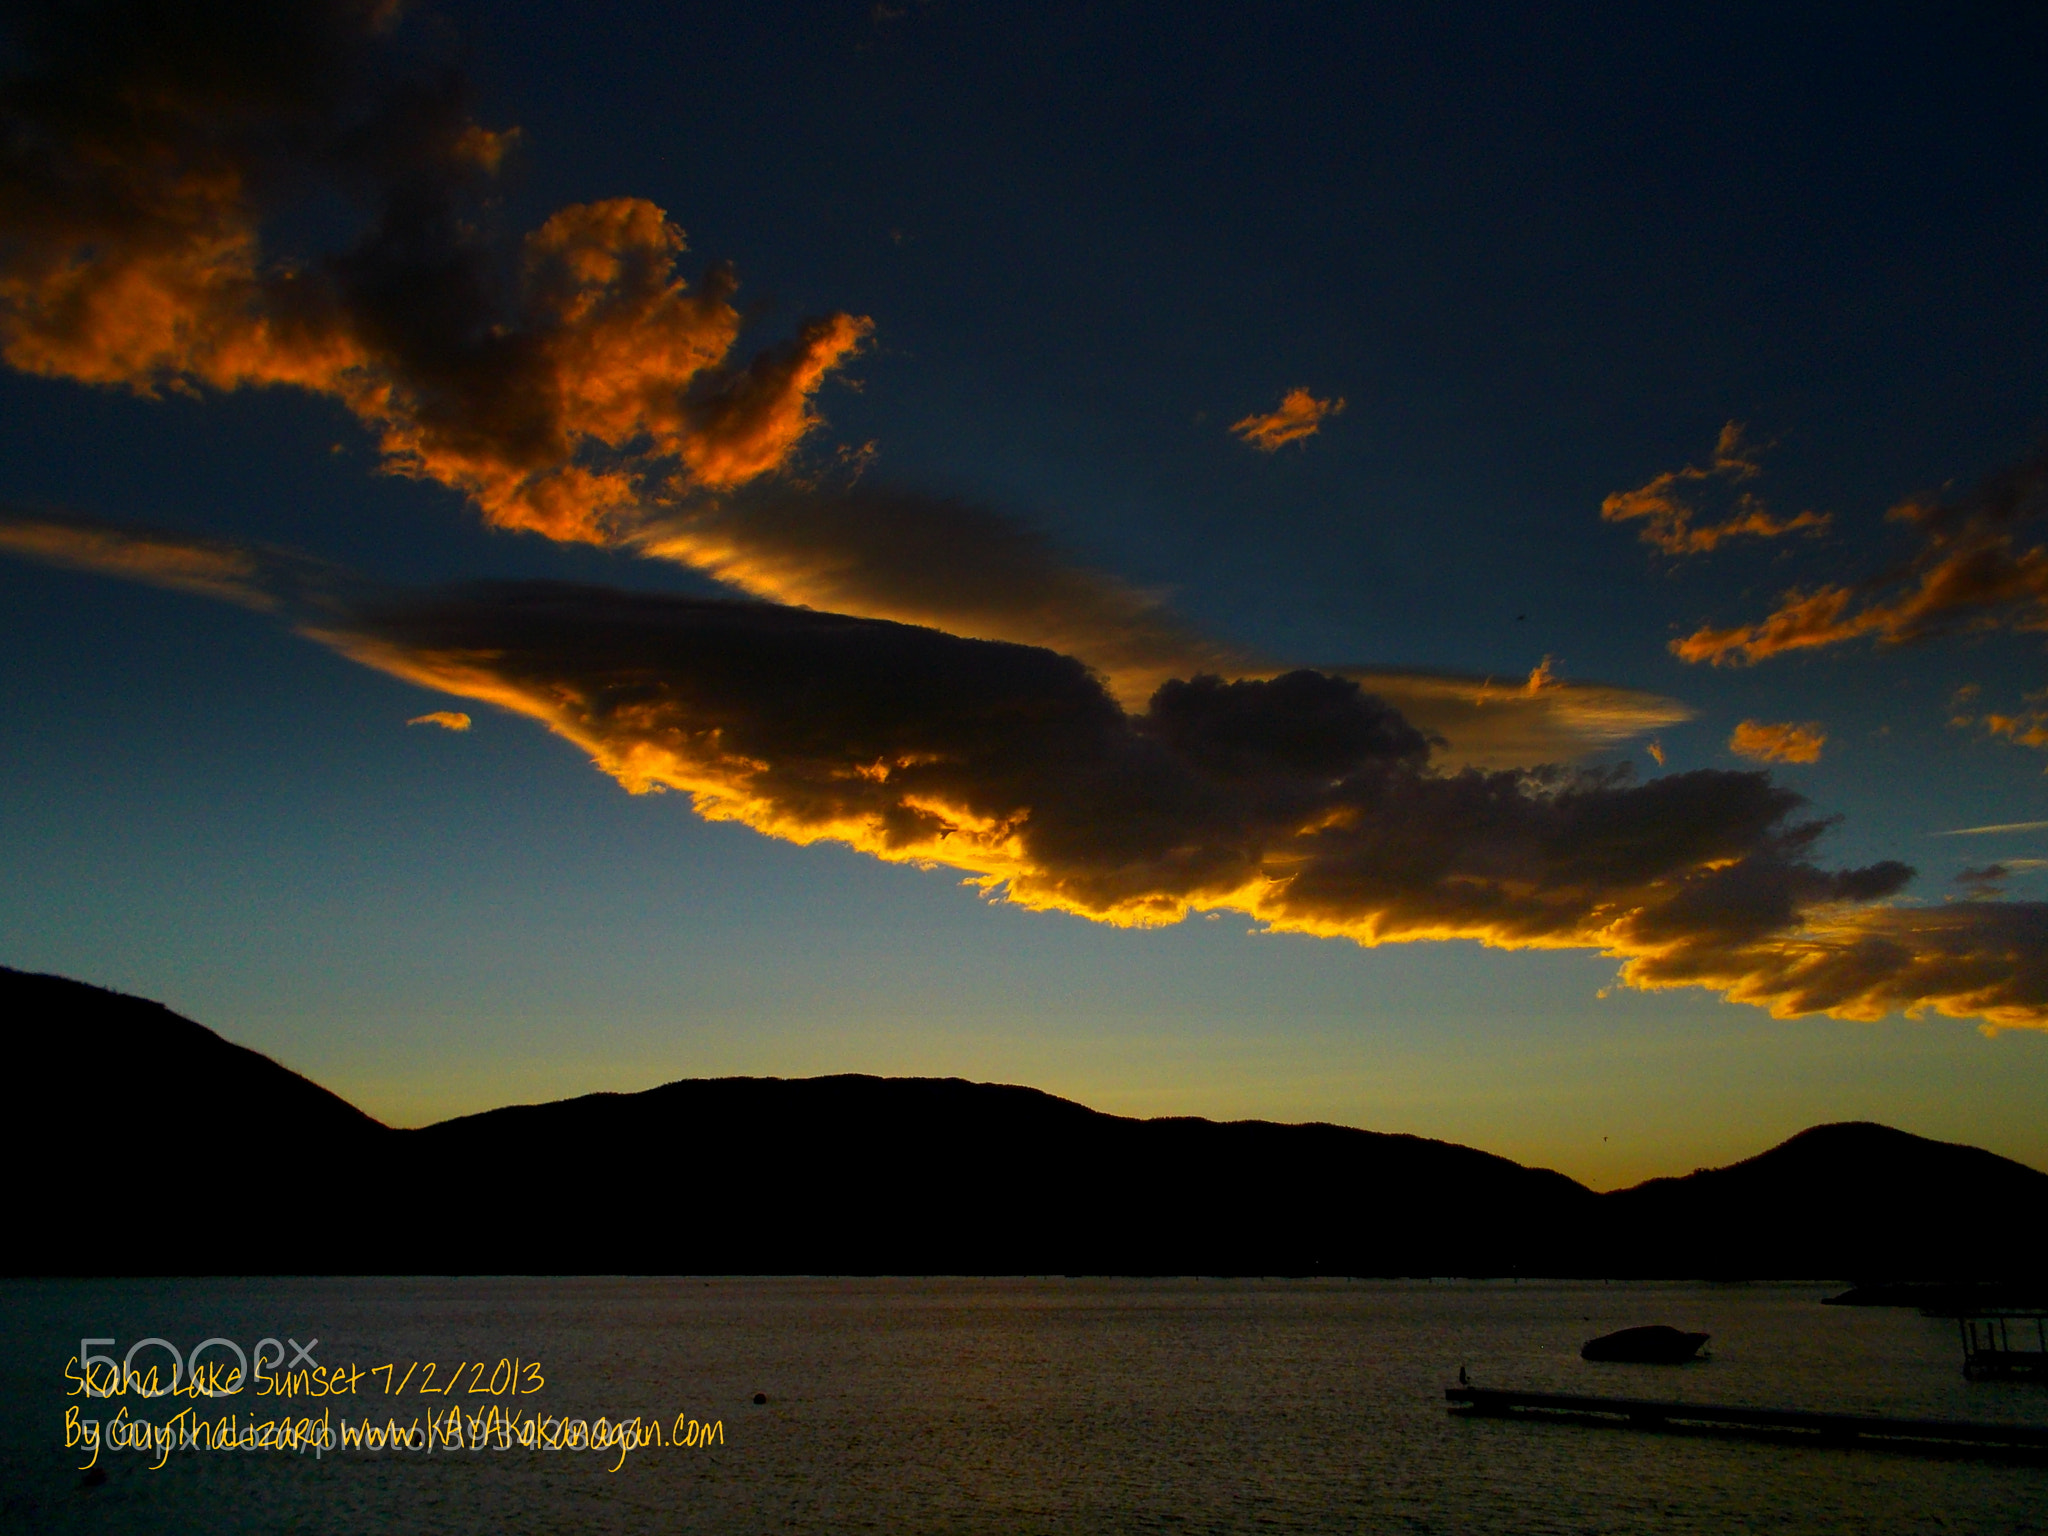 Photograph Skaha Lake Sunset 7/2/2013 #12 by Guy Hoffman on 500px